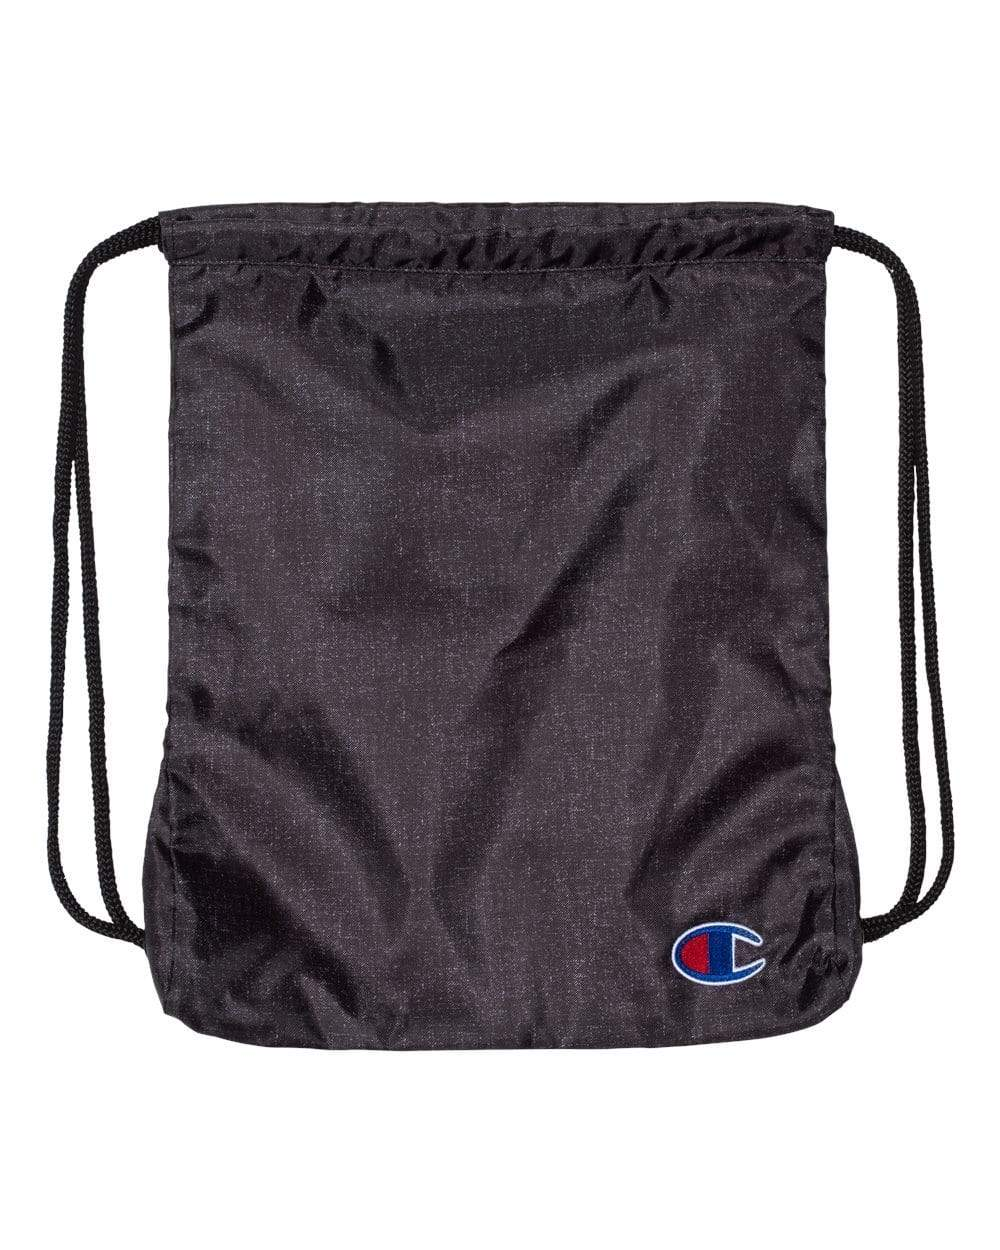 Champion Bags One Size / Heatehr Black Champion - Carry Sack